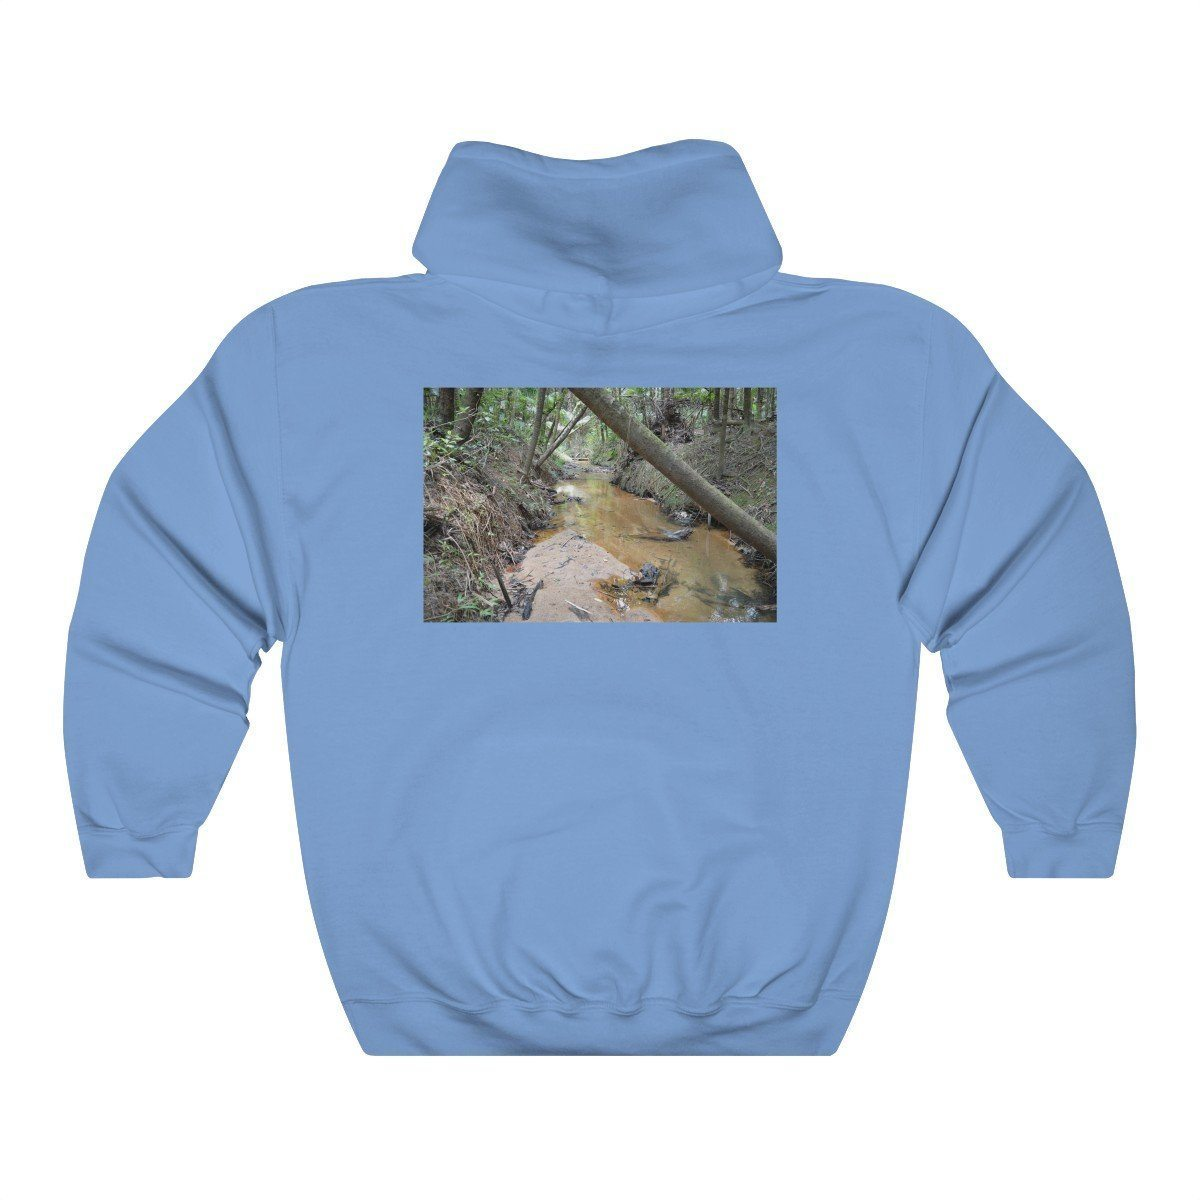 Unisex Heavy Blend™ Hooded Sweatshirt - Holy Spirit river explorations 2014 - EYNF - El Yunque Rain Forest Puerto Rico Hoodie Printify